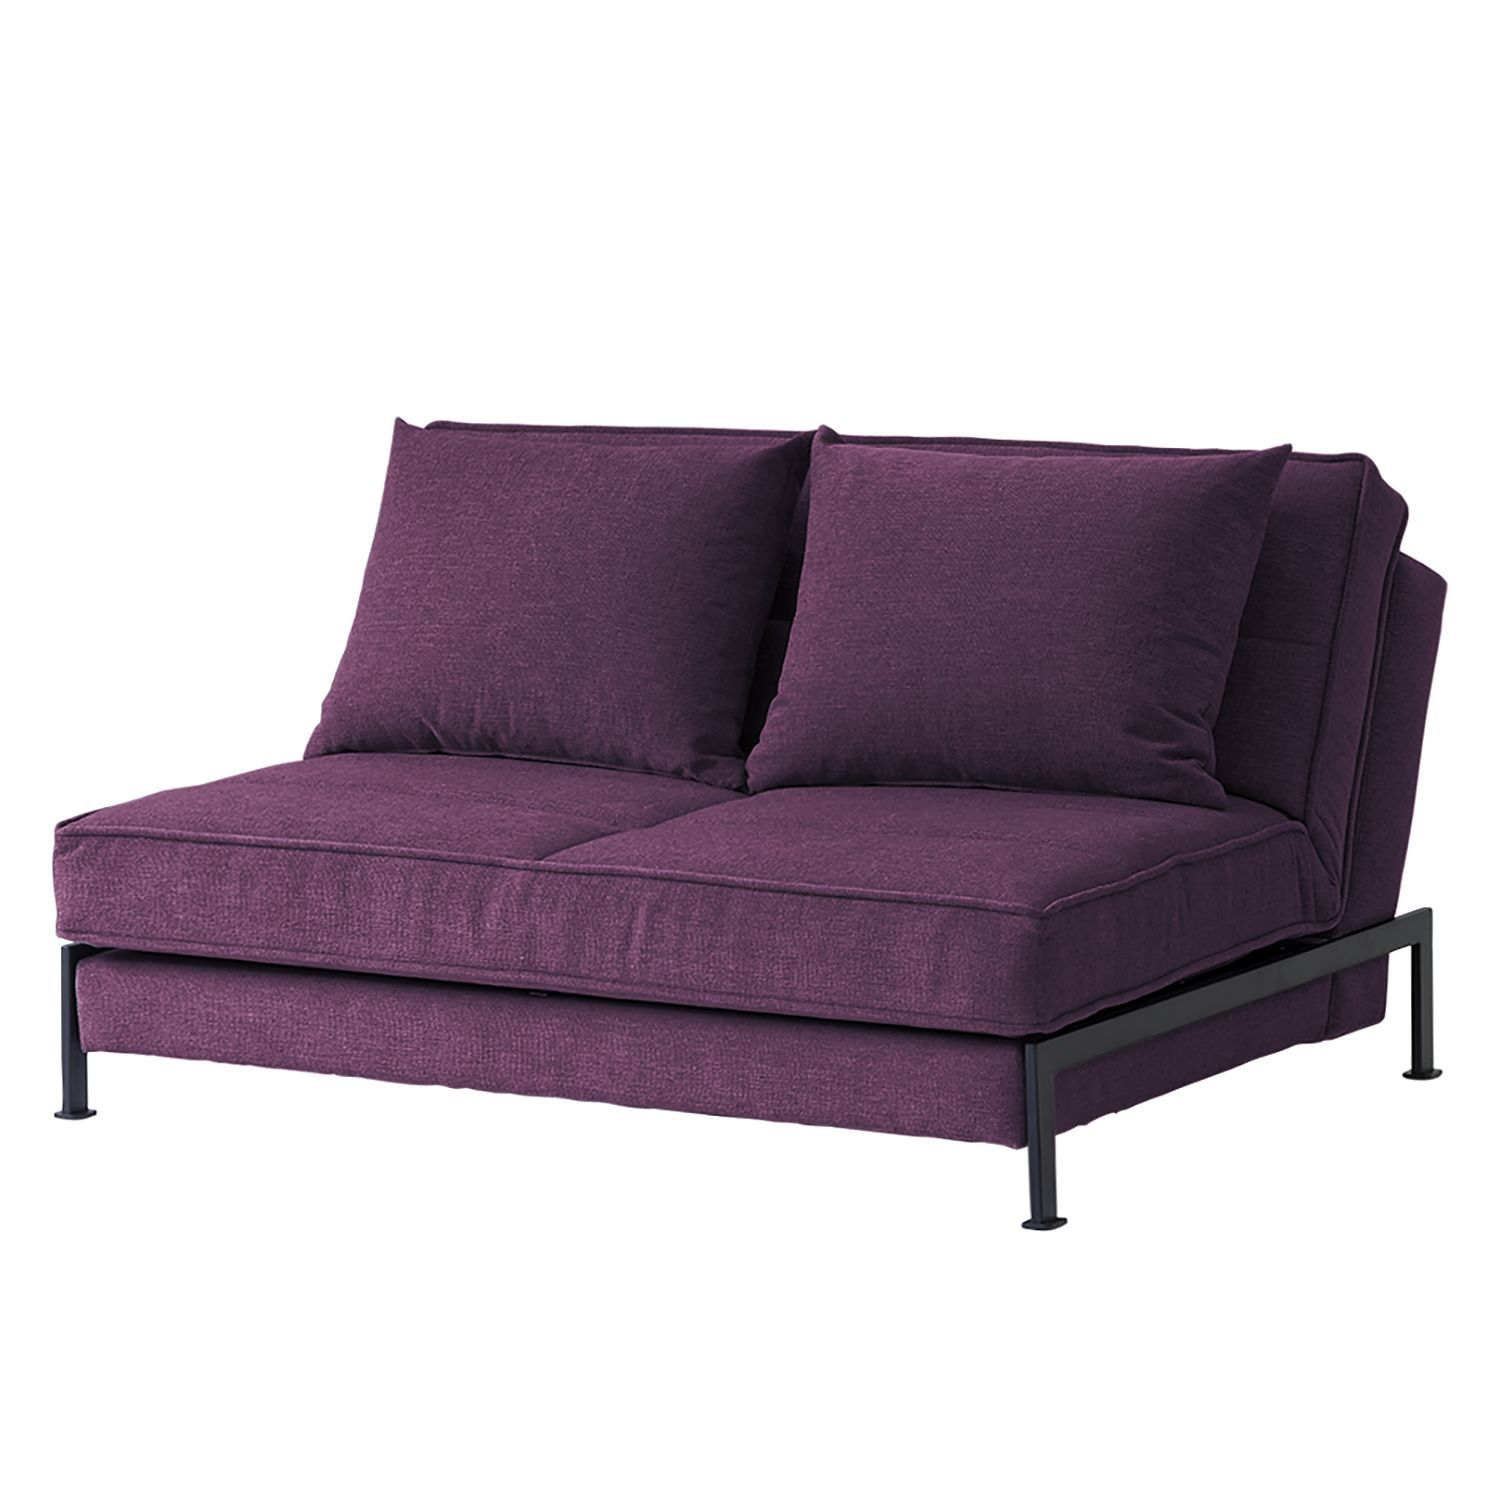 Moderne Sofas Online Kaufen Schlafsofa Ecksofa Federkern Sofa Designs For Small Living Rooms Cheap Online Furnitur Federkern Sofa Schlafsofa Ecksofa Sofa